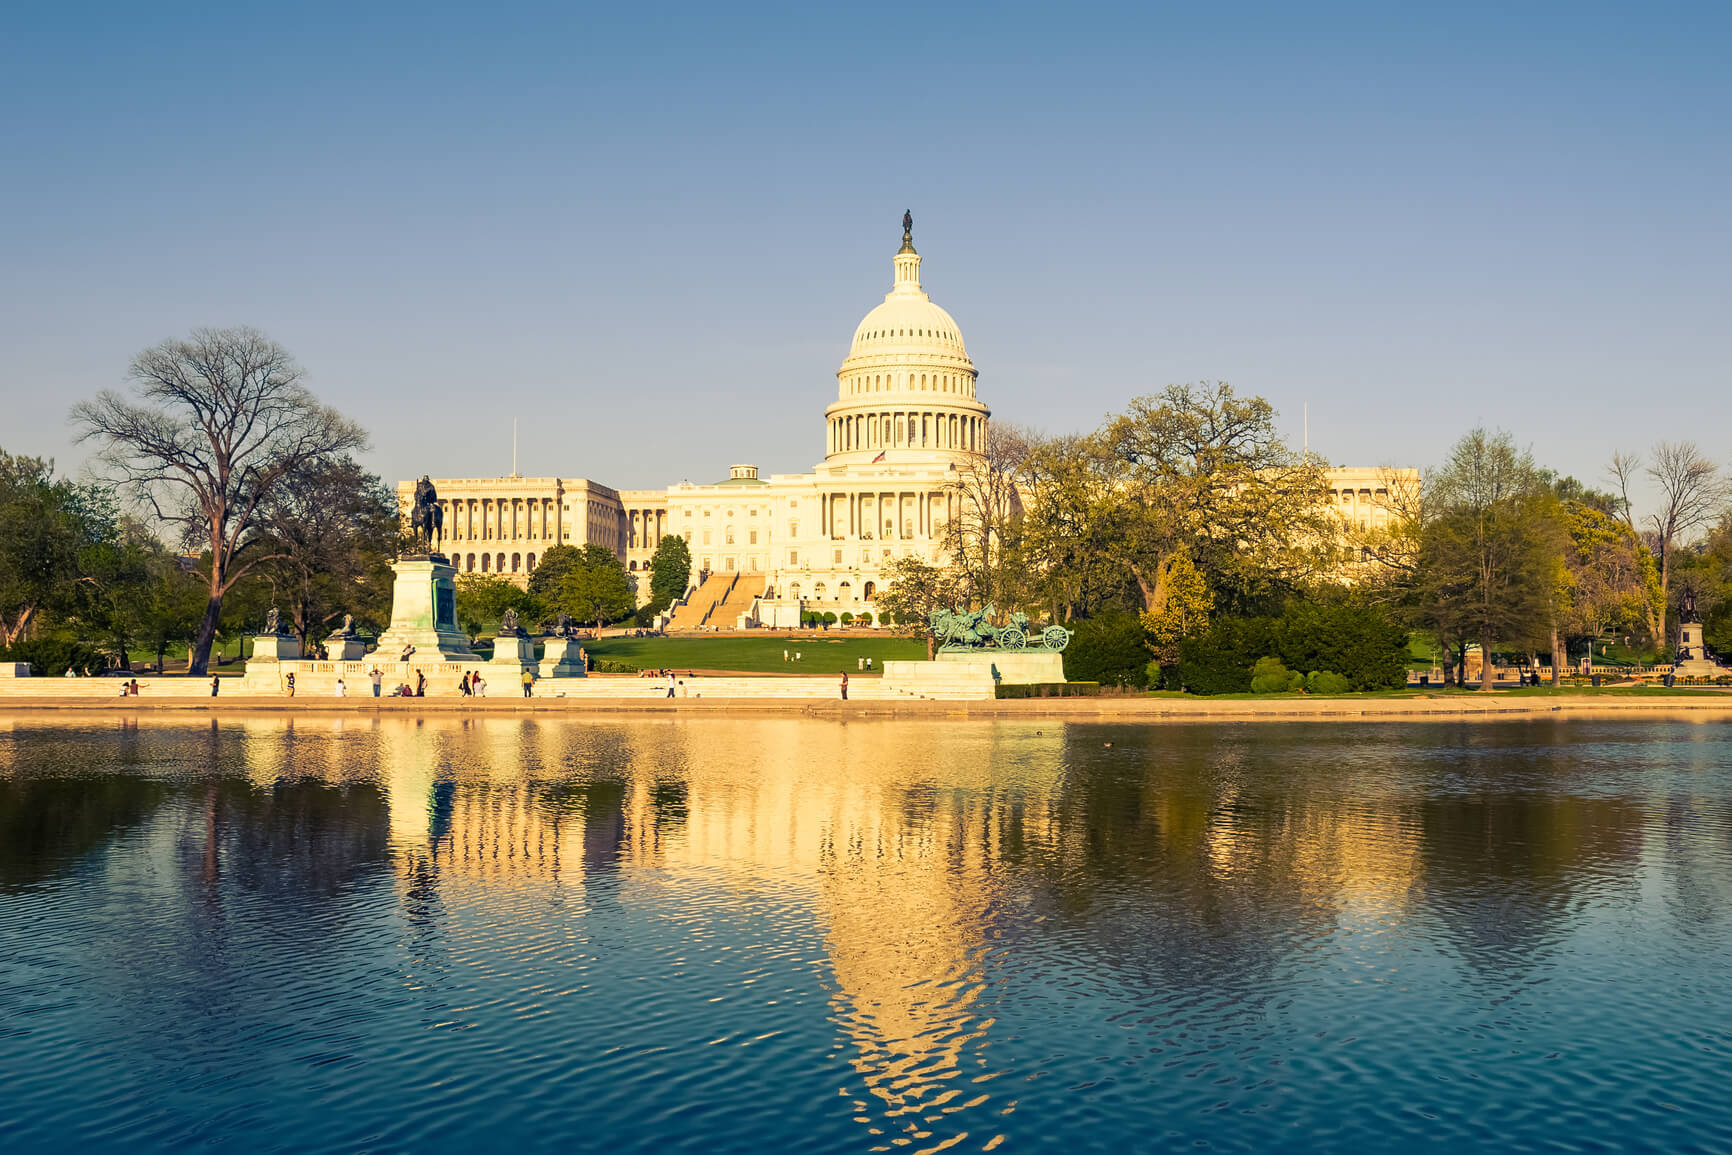 Non-stop from Boston to Washington DC (& vice versa) for only $38 roundtrip (Sep-Jan dates)